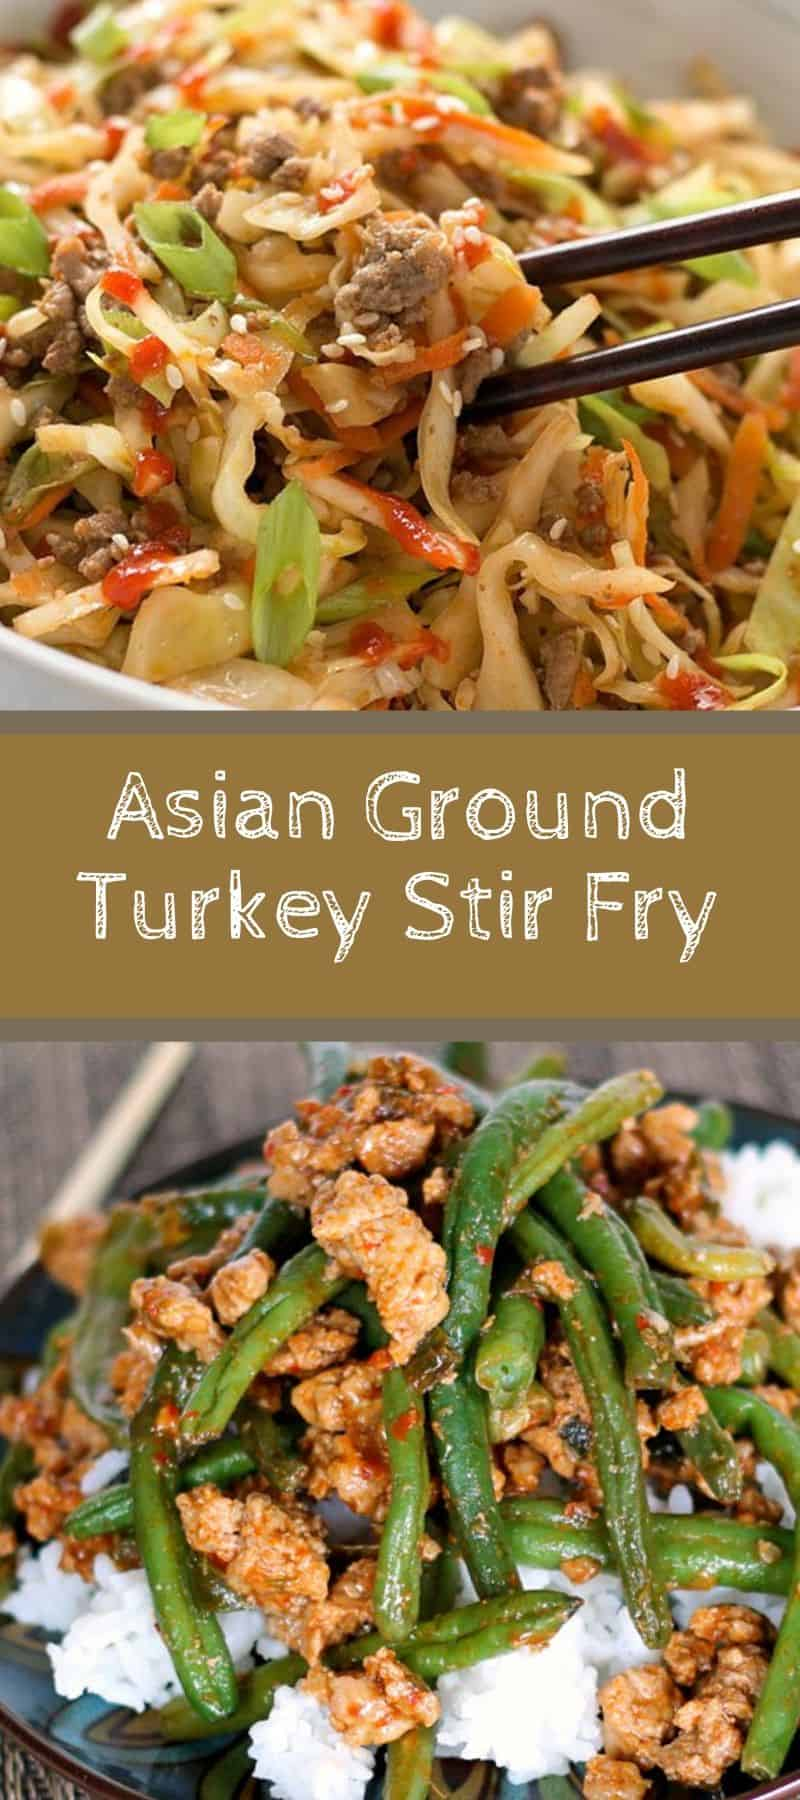 Asian Ground Turkey Stir Fry Recipe 2